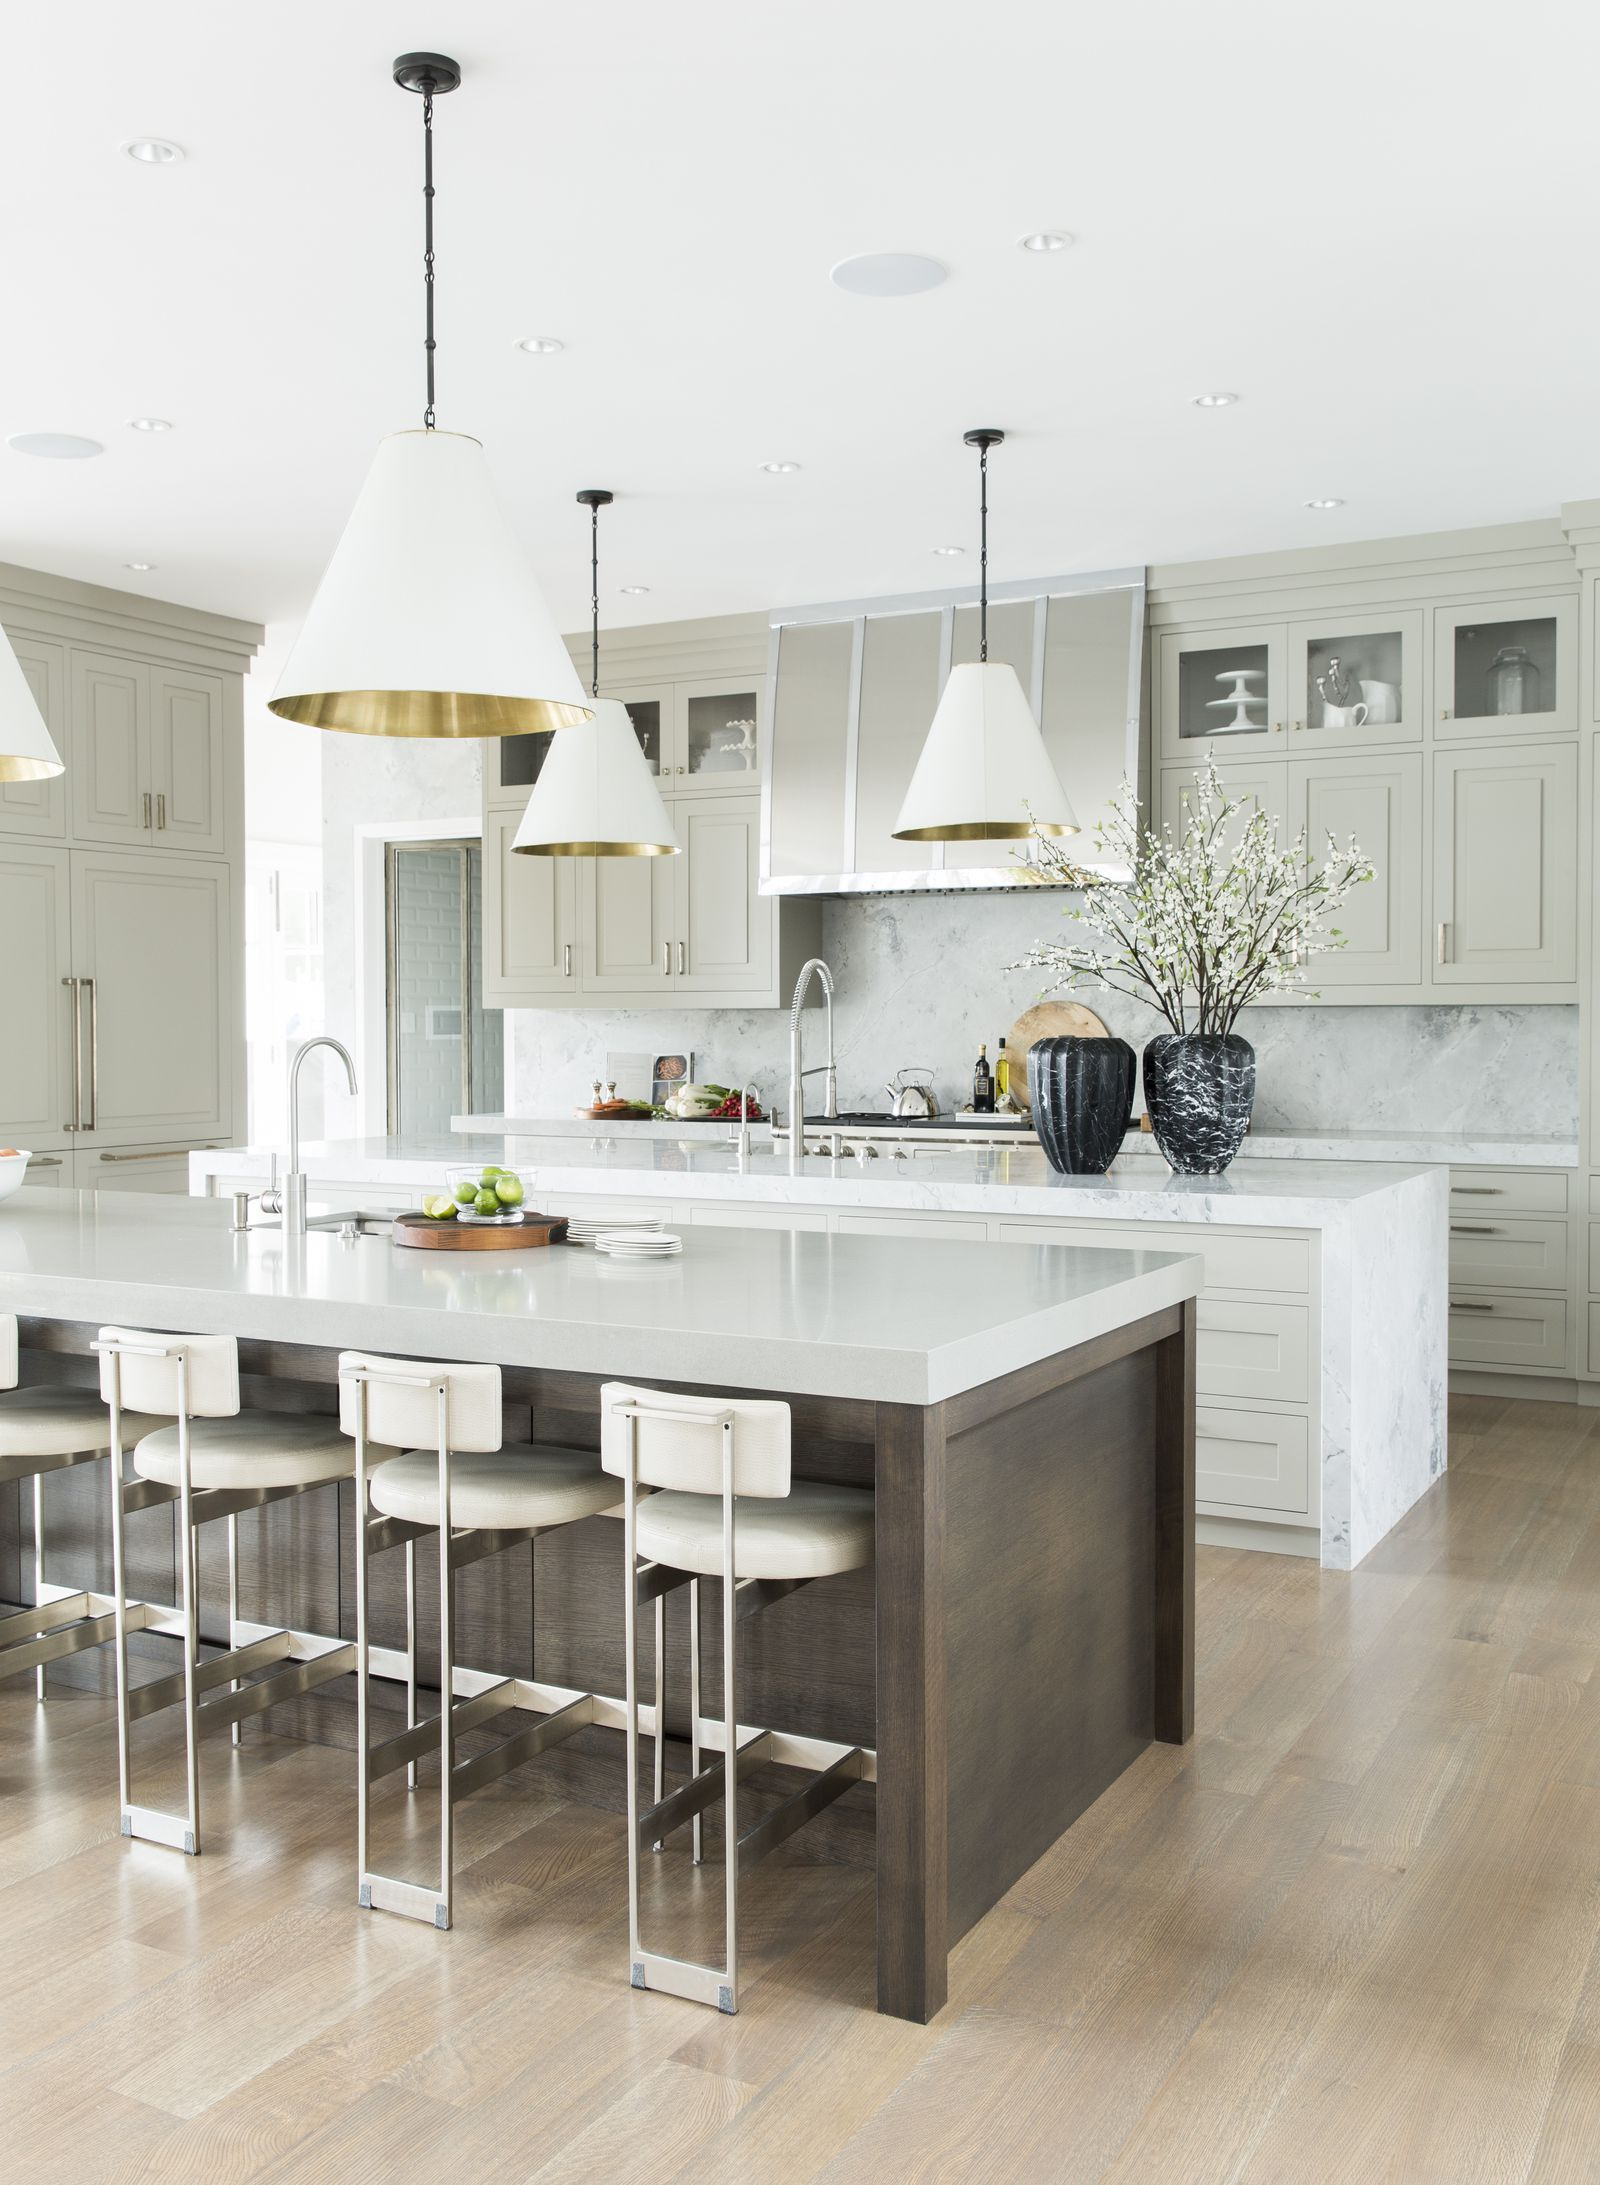 Tour A Coastal Contemporary Dream Home In The Unlikeliest ...